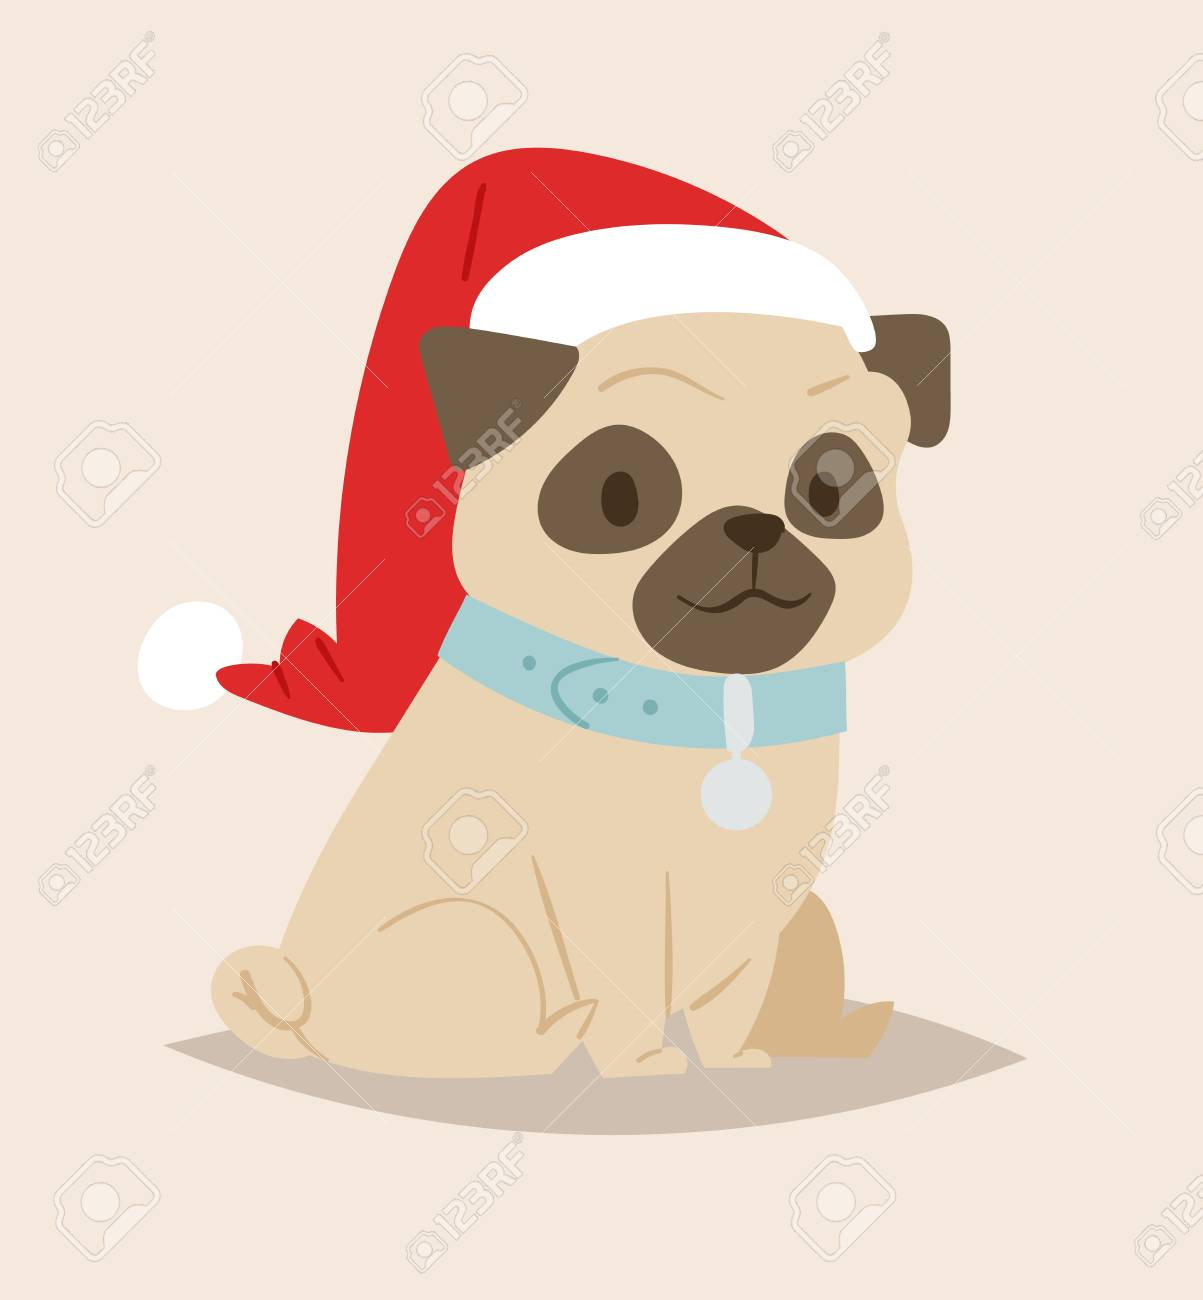 Christmas Dog Vector Cute Cartoon Puppy Characters Illustration